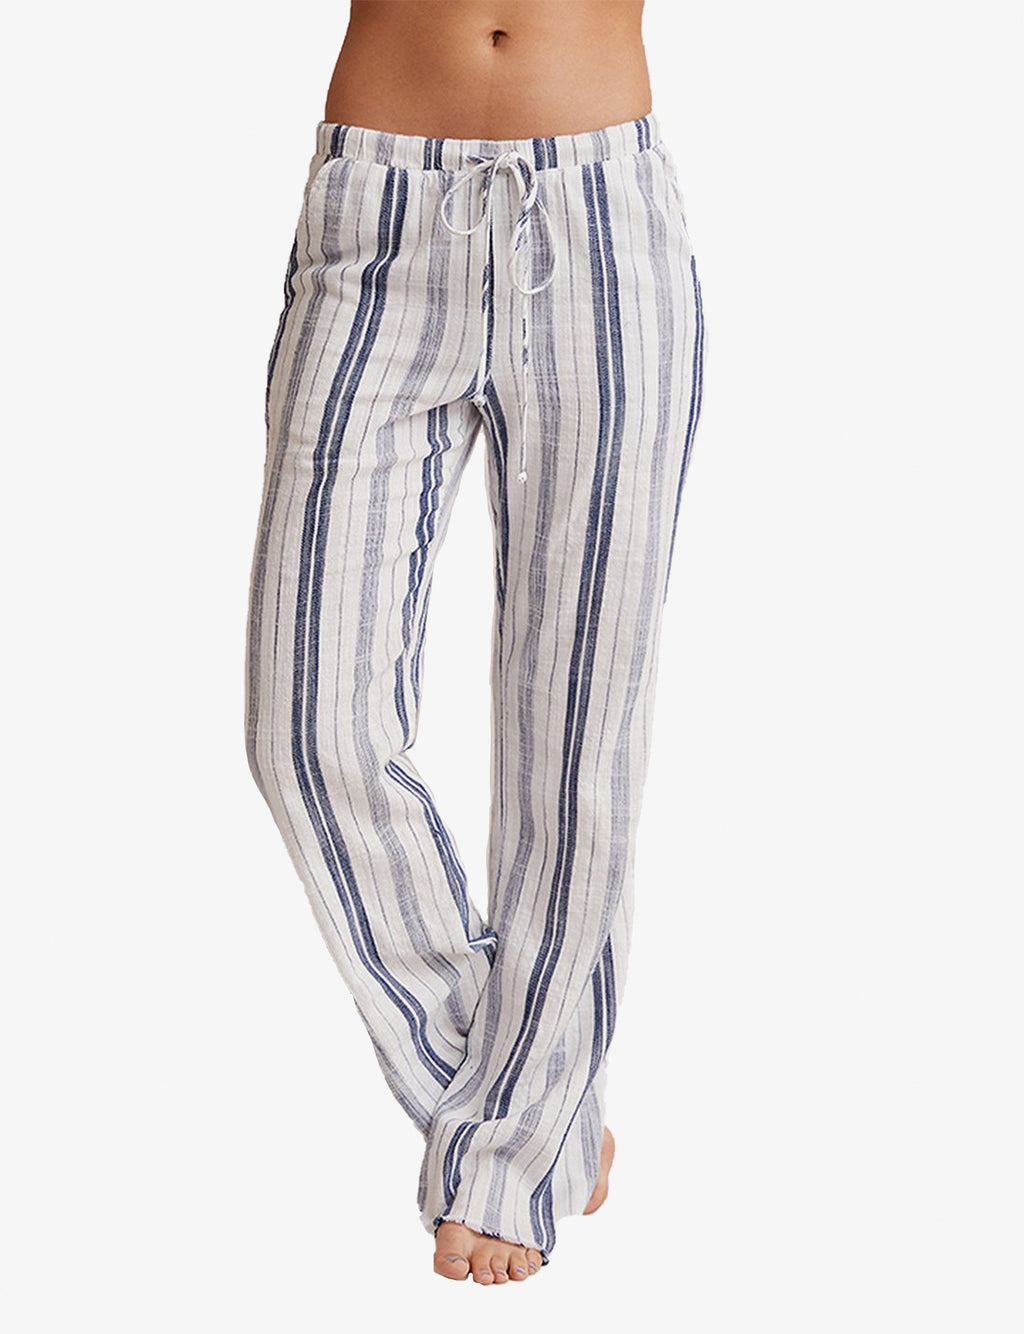 Bella Dahl Wide Leg Frayed Hem Pant in White/Navy Stripe